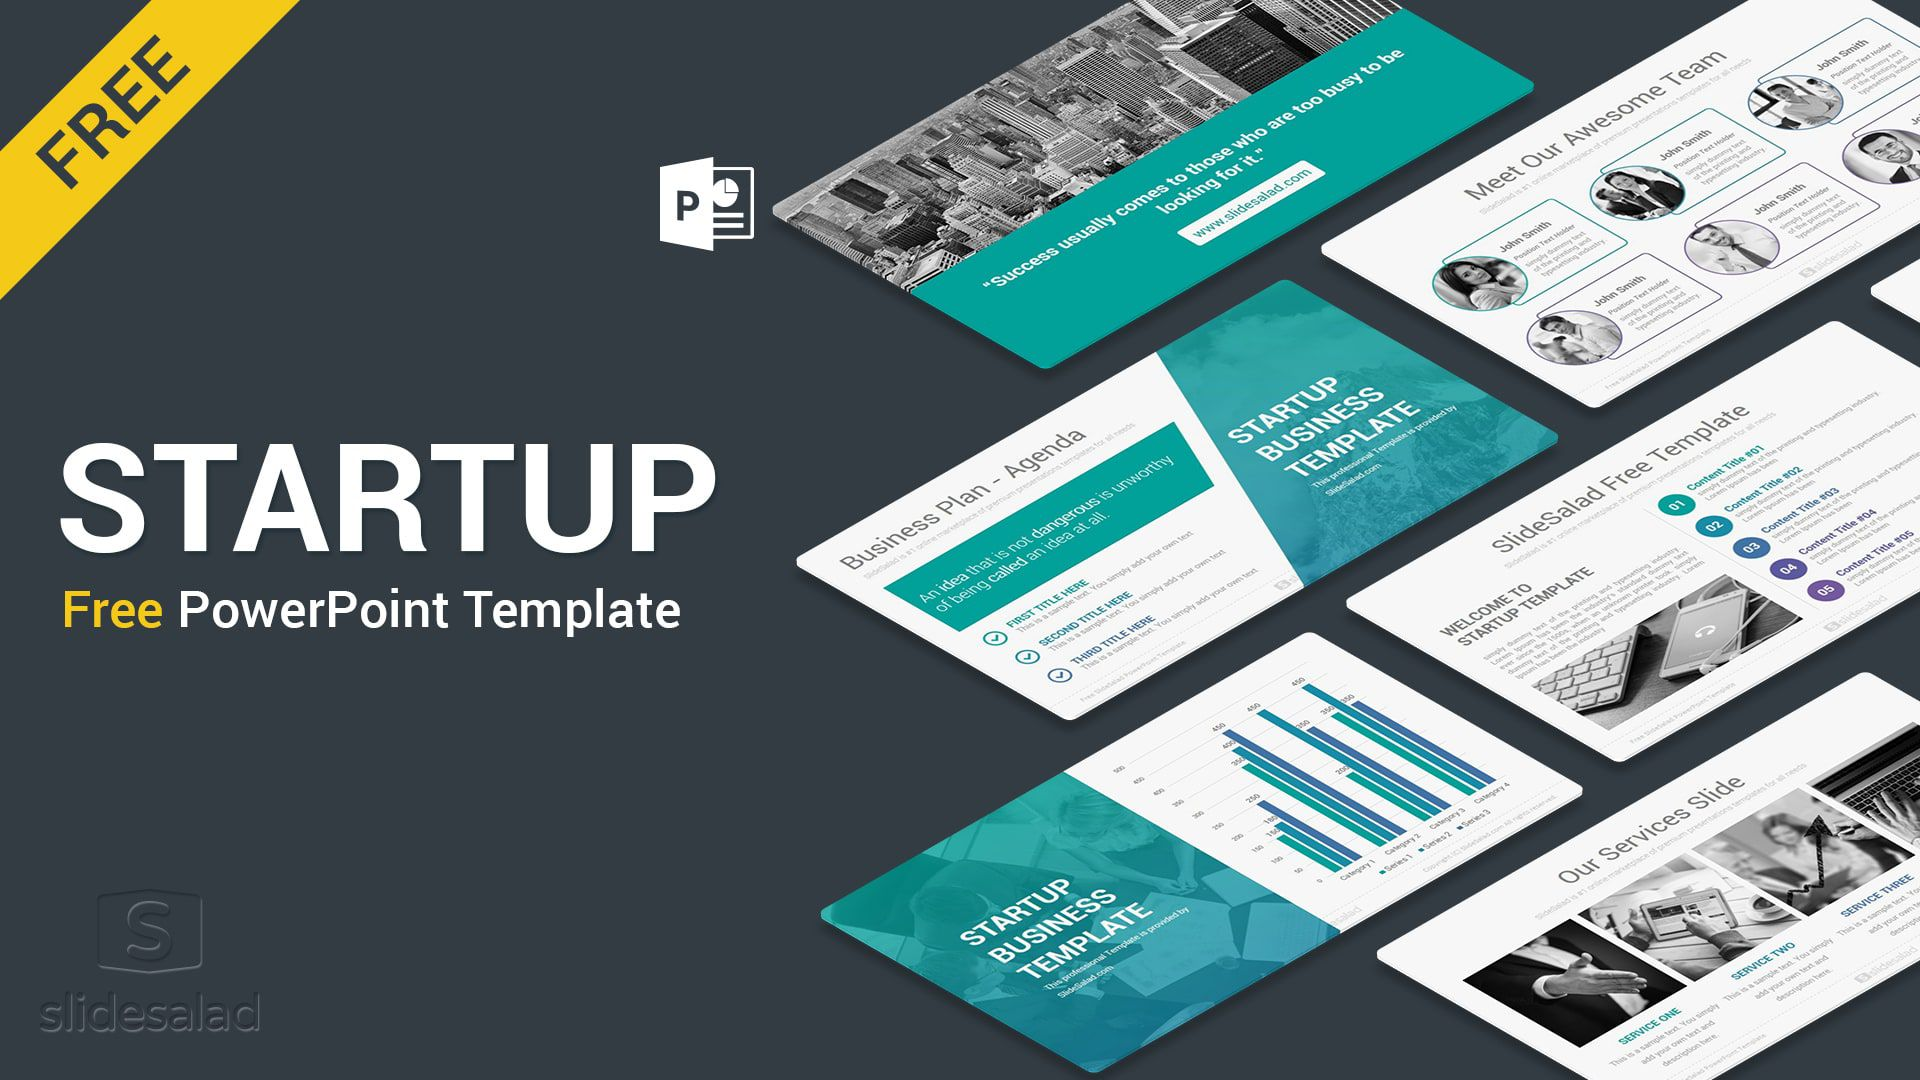 009 Fascinating Free Busines Proposal Template Powerpoint Picture  Best Plan Ppt 2020 SaleFull